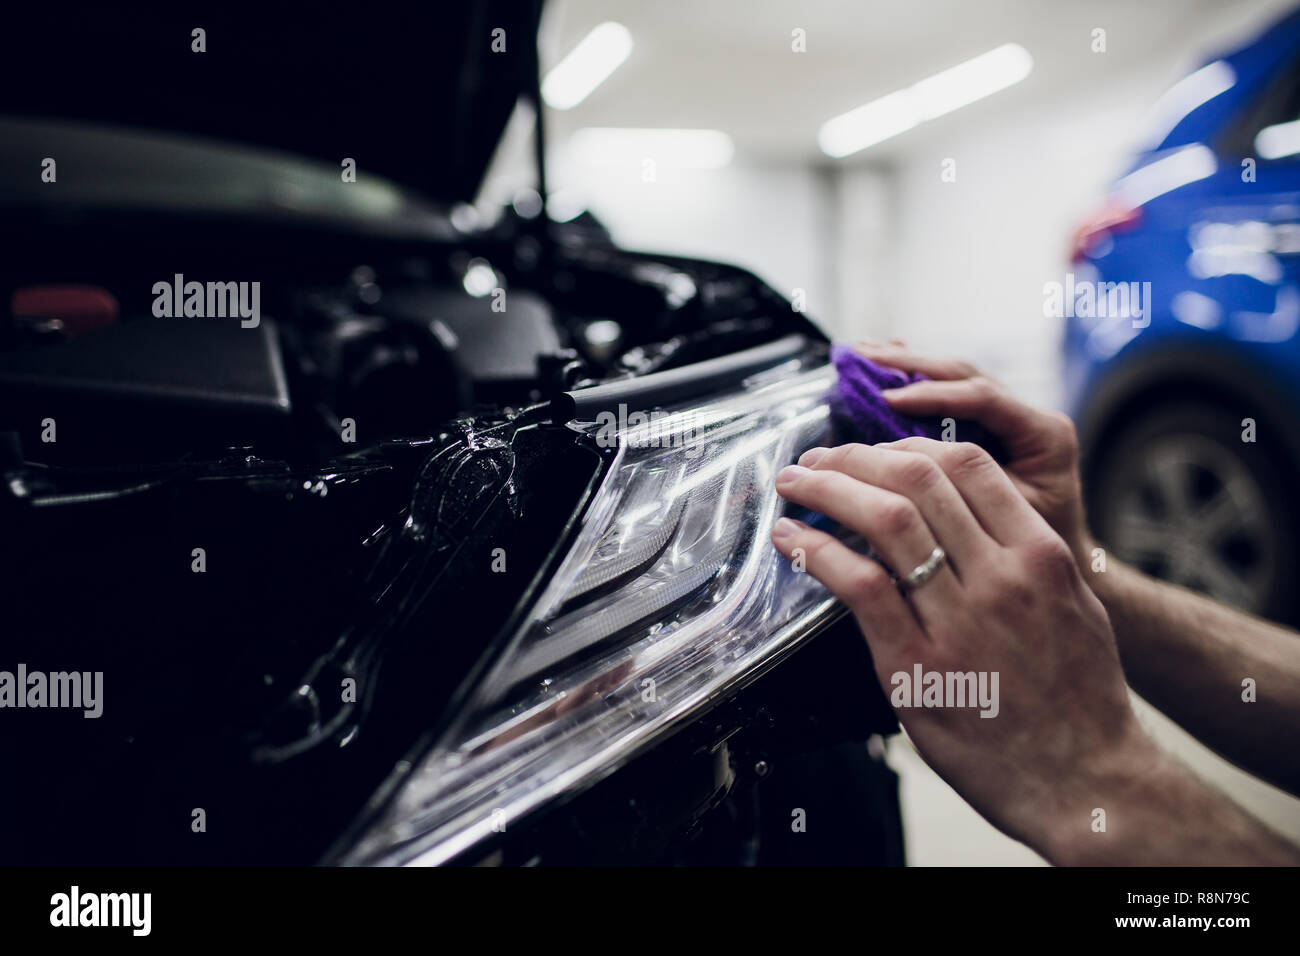 Worker Hands Installs Car Paint Protection Film Wrap Headlamp Stock